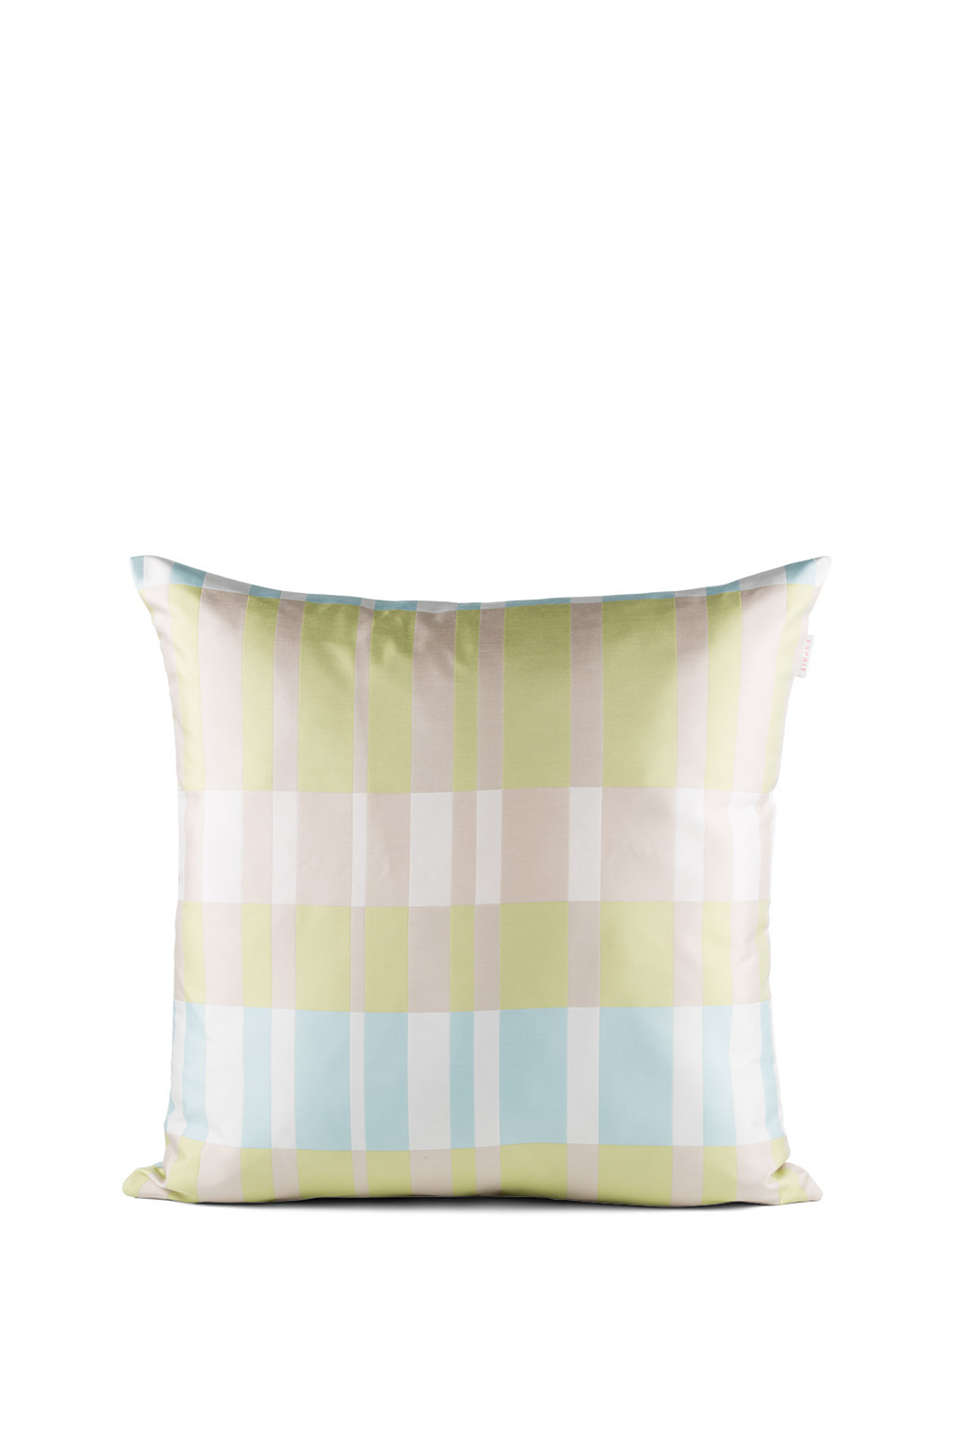 Esprit - Top double-layer fabric cushion cover